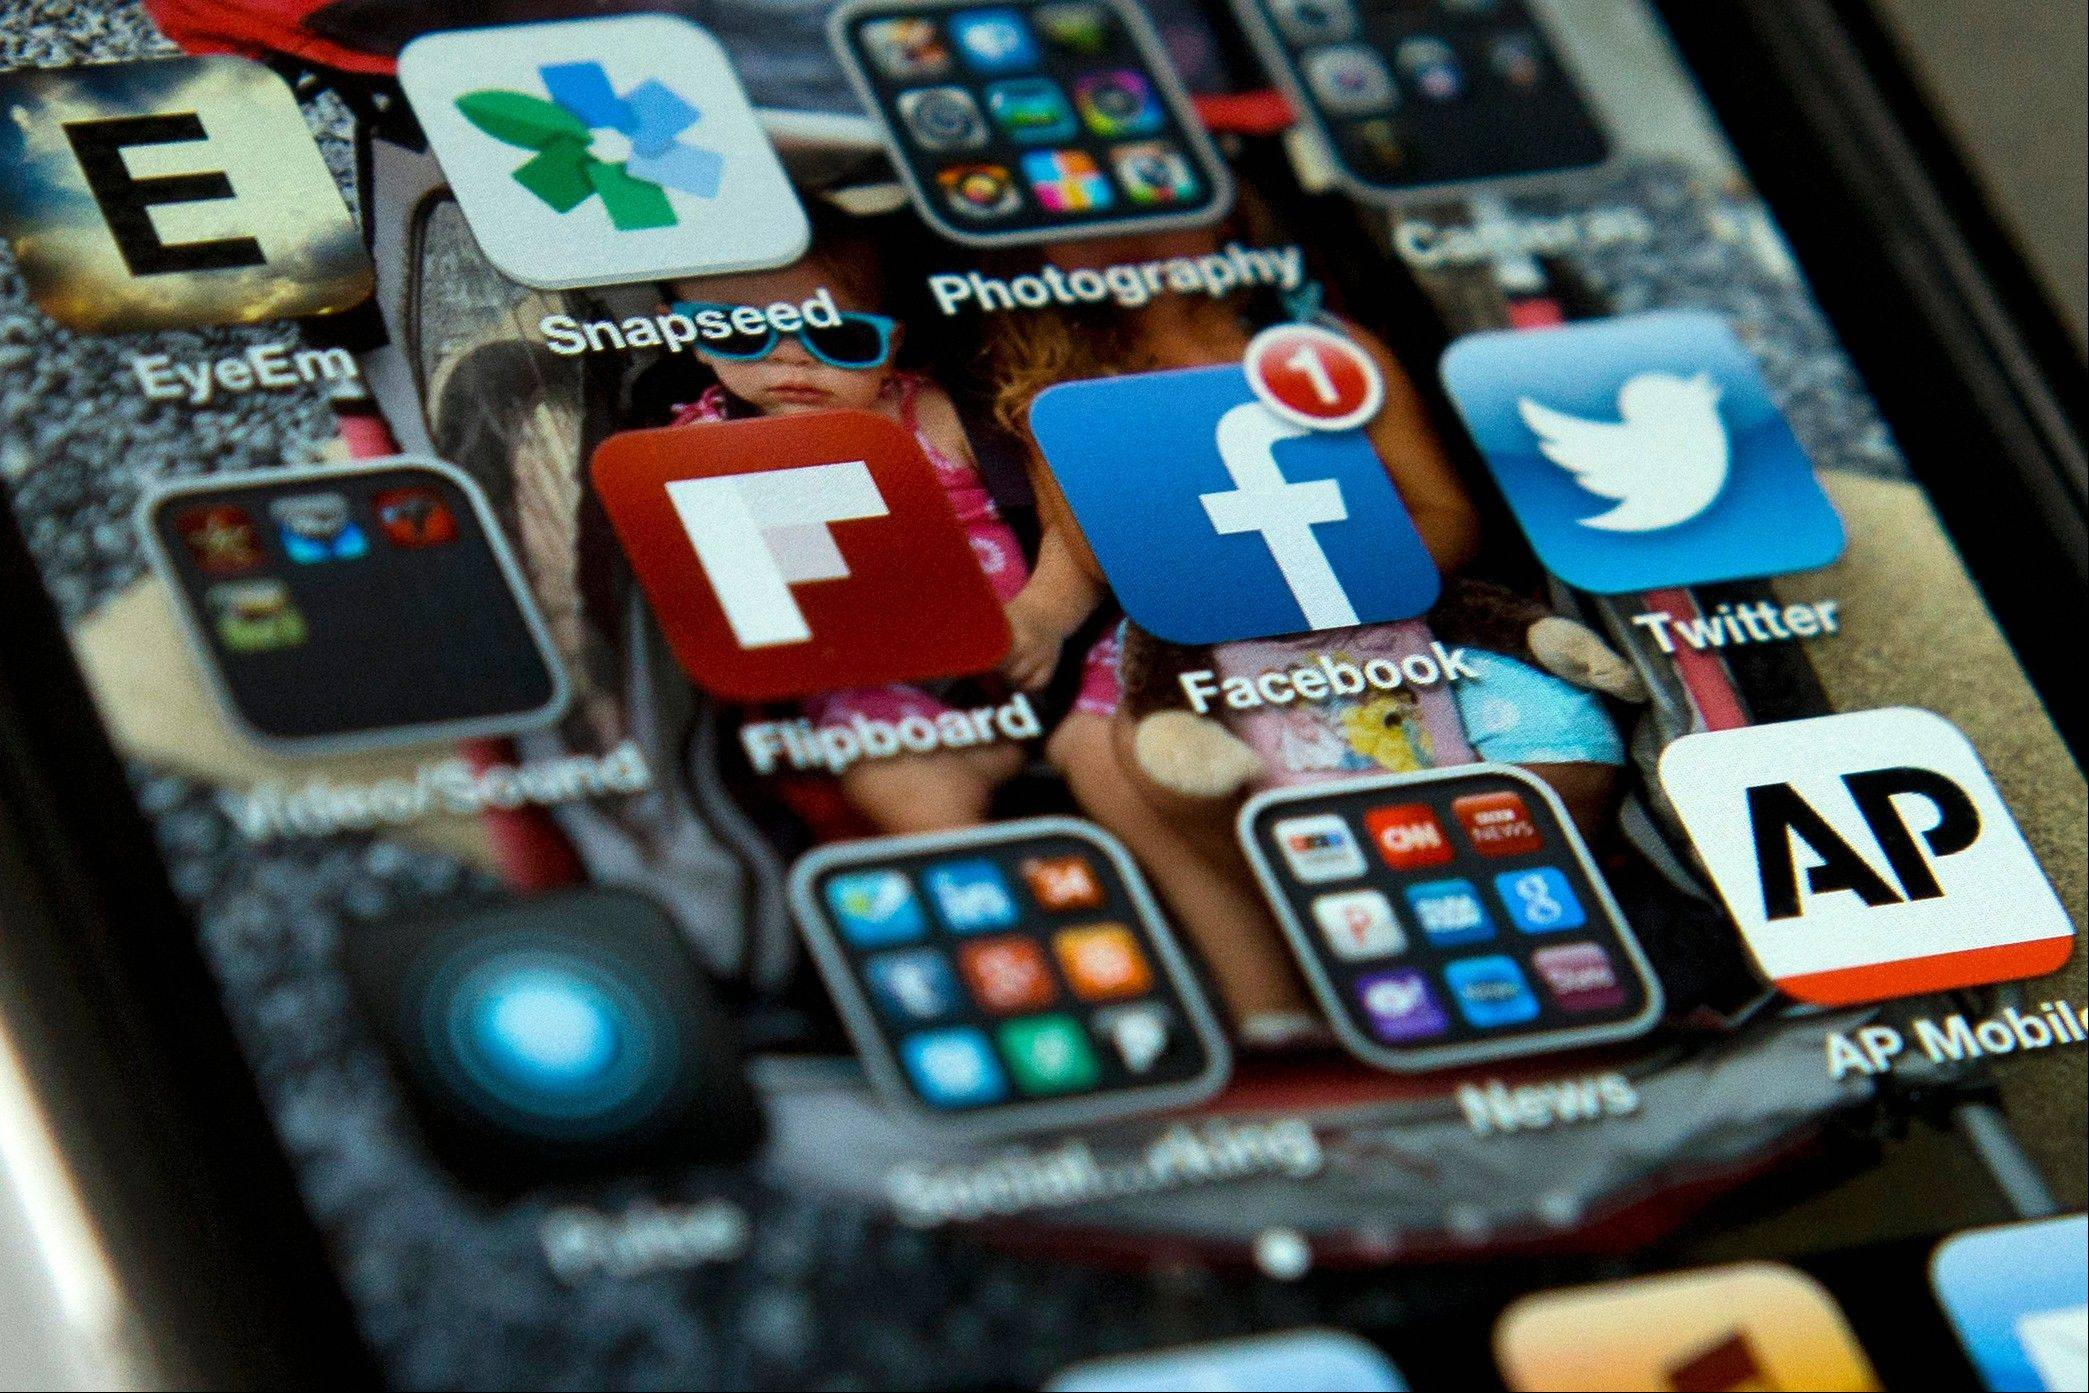 A view of an iPhone, showing the Twitter and Facebook apps among others. A new poll finds that teens are sharing more about themselves on social media. They�re also moving increasingly to Twitter to avoid their parents and the �oversharing� that they see on Facebook.